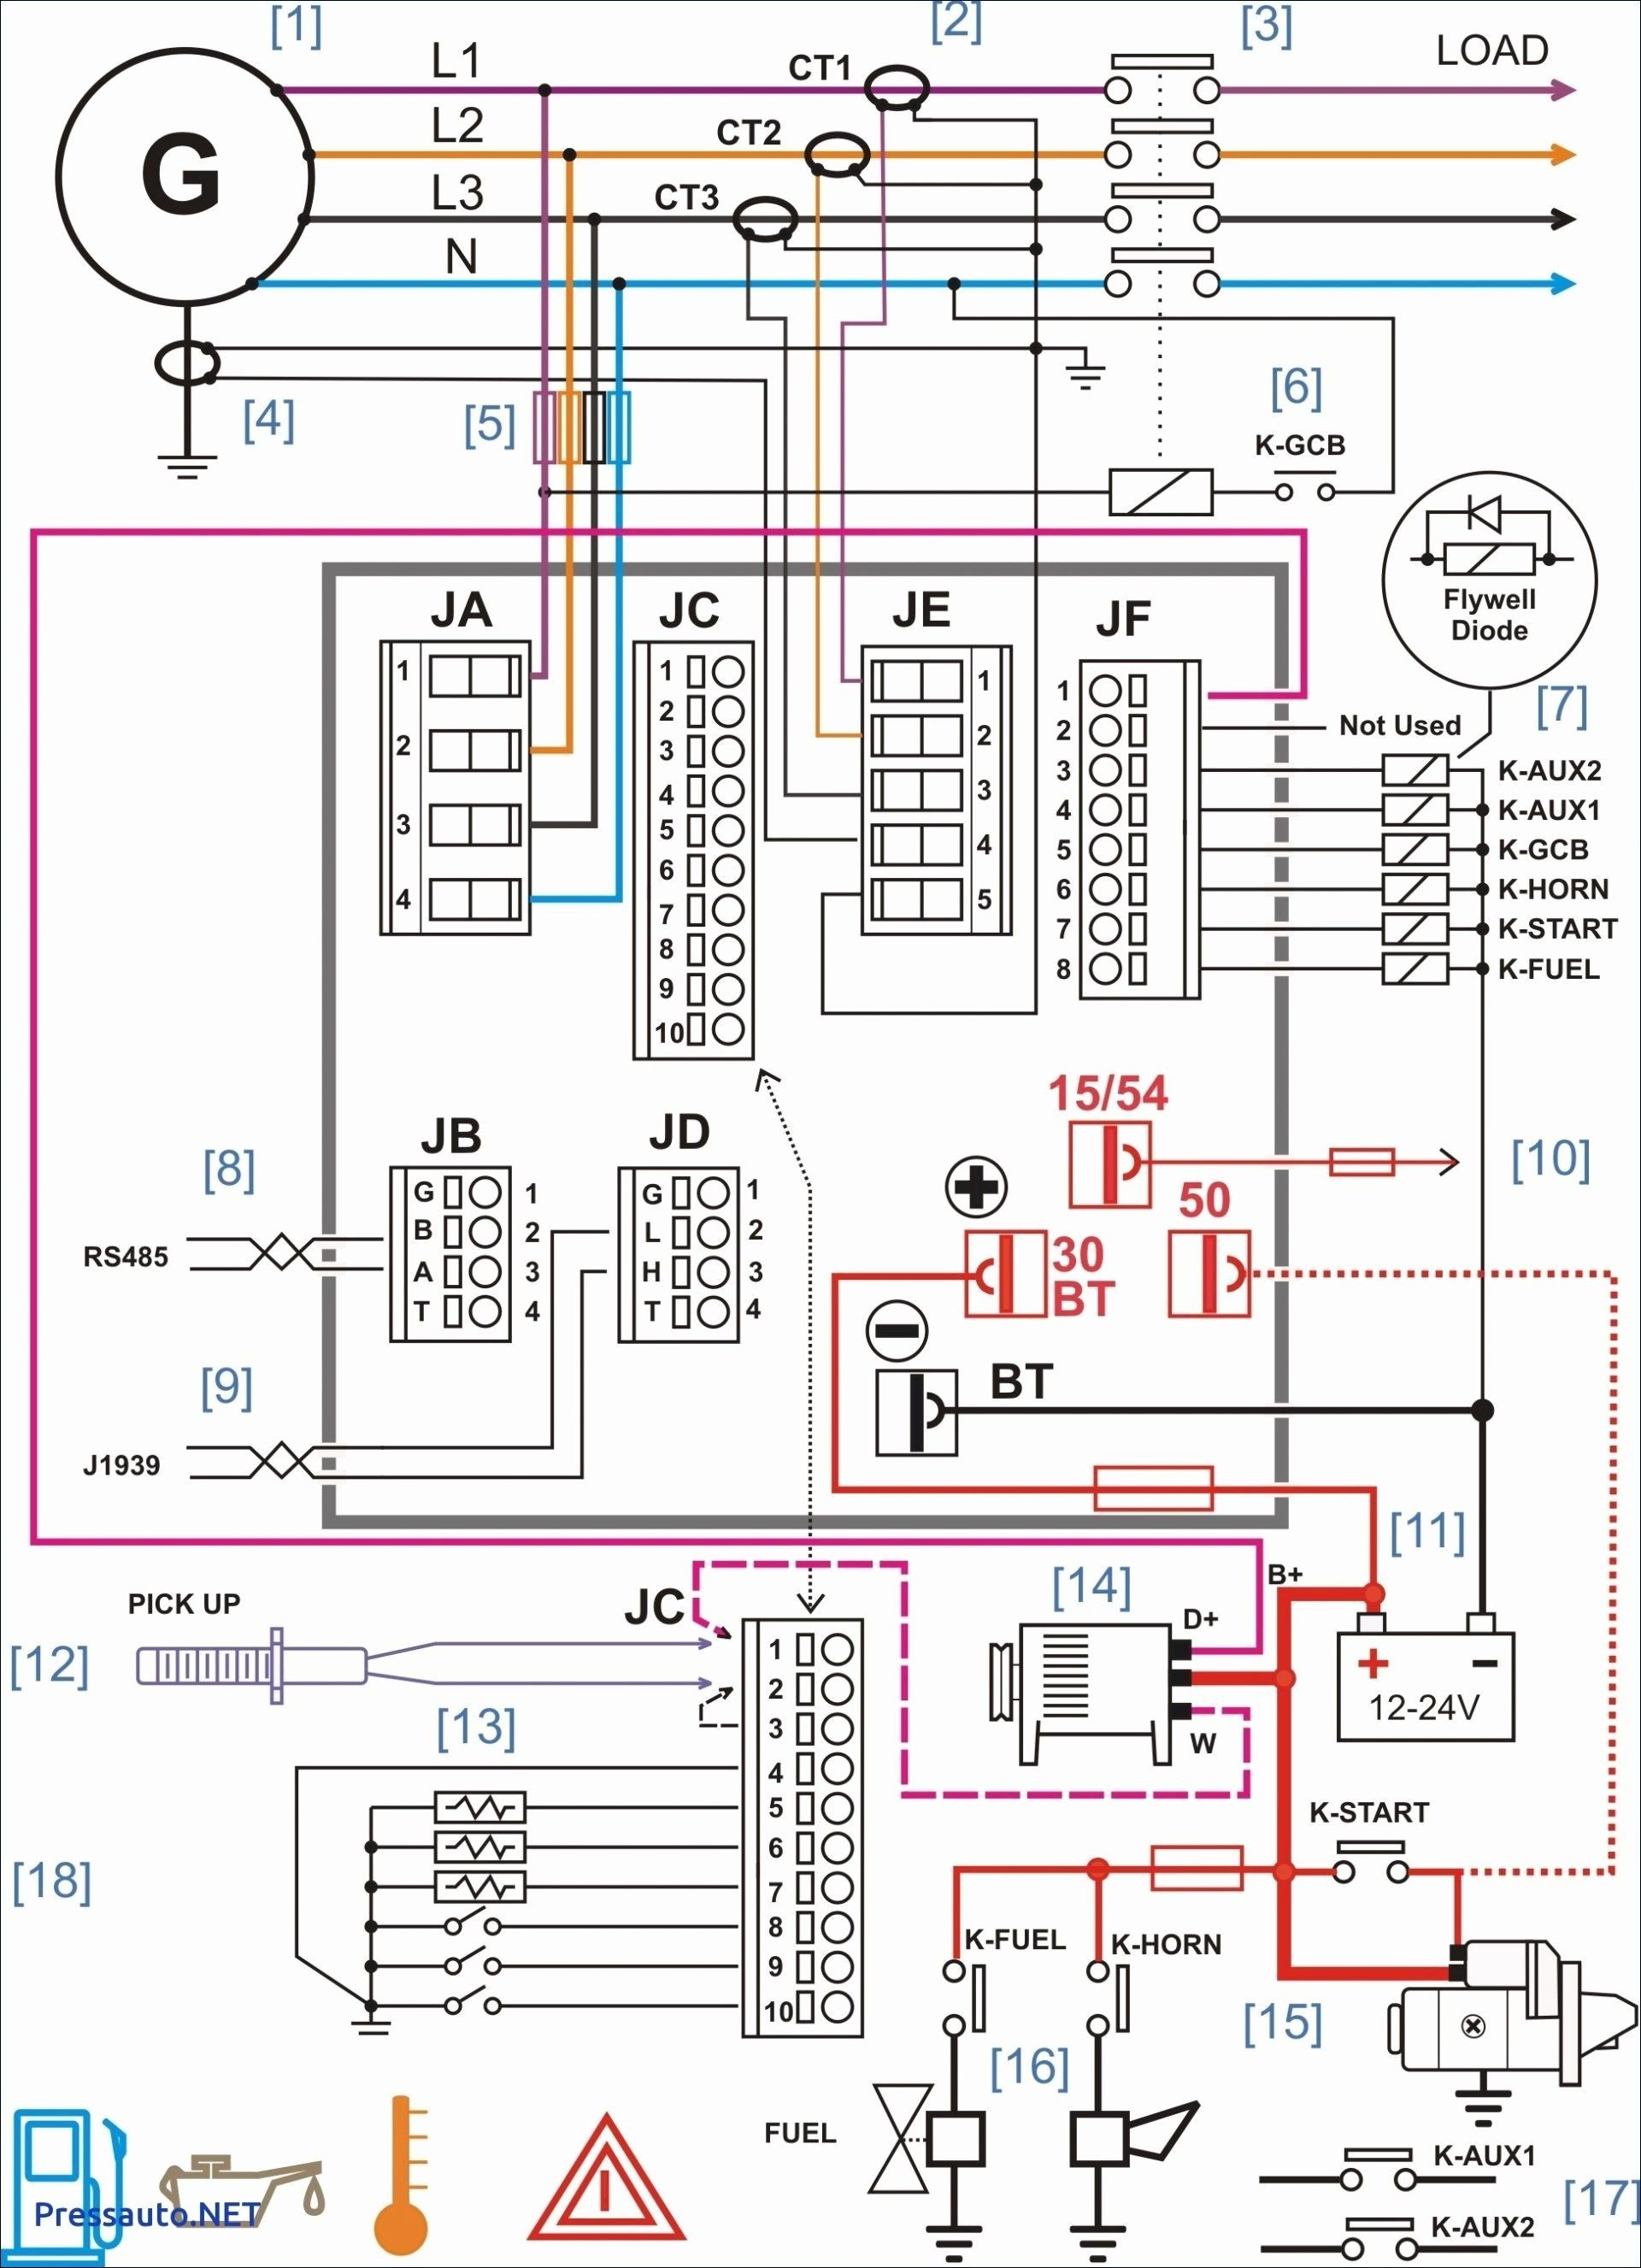 house wiring circuit diagram pdf save home electrical wiring diagrams  awesome house ele… | electrical circuit diagram, electrical wiring diagram, electrical  diagram  pinterest